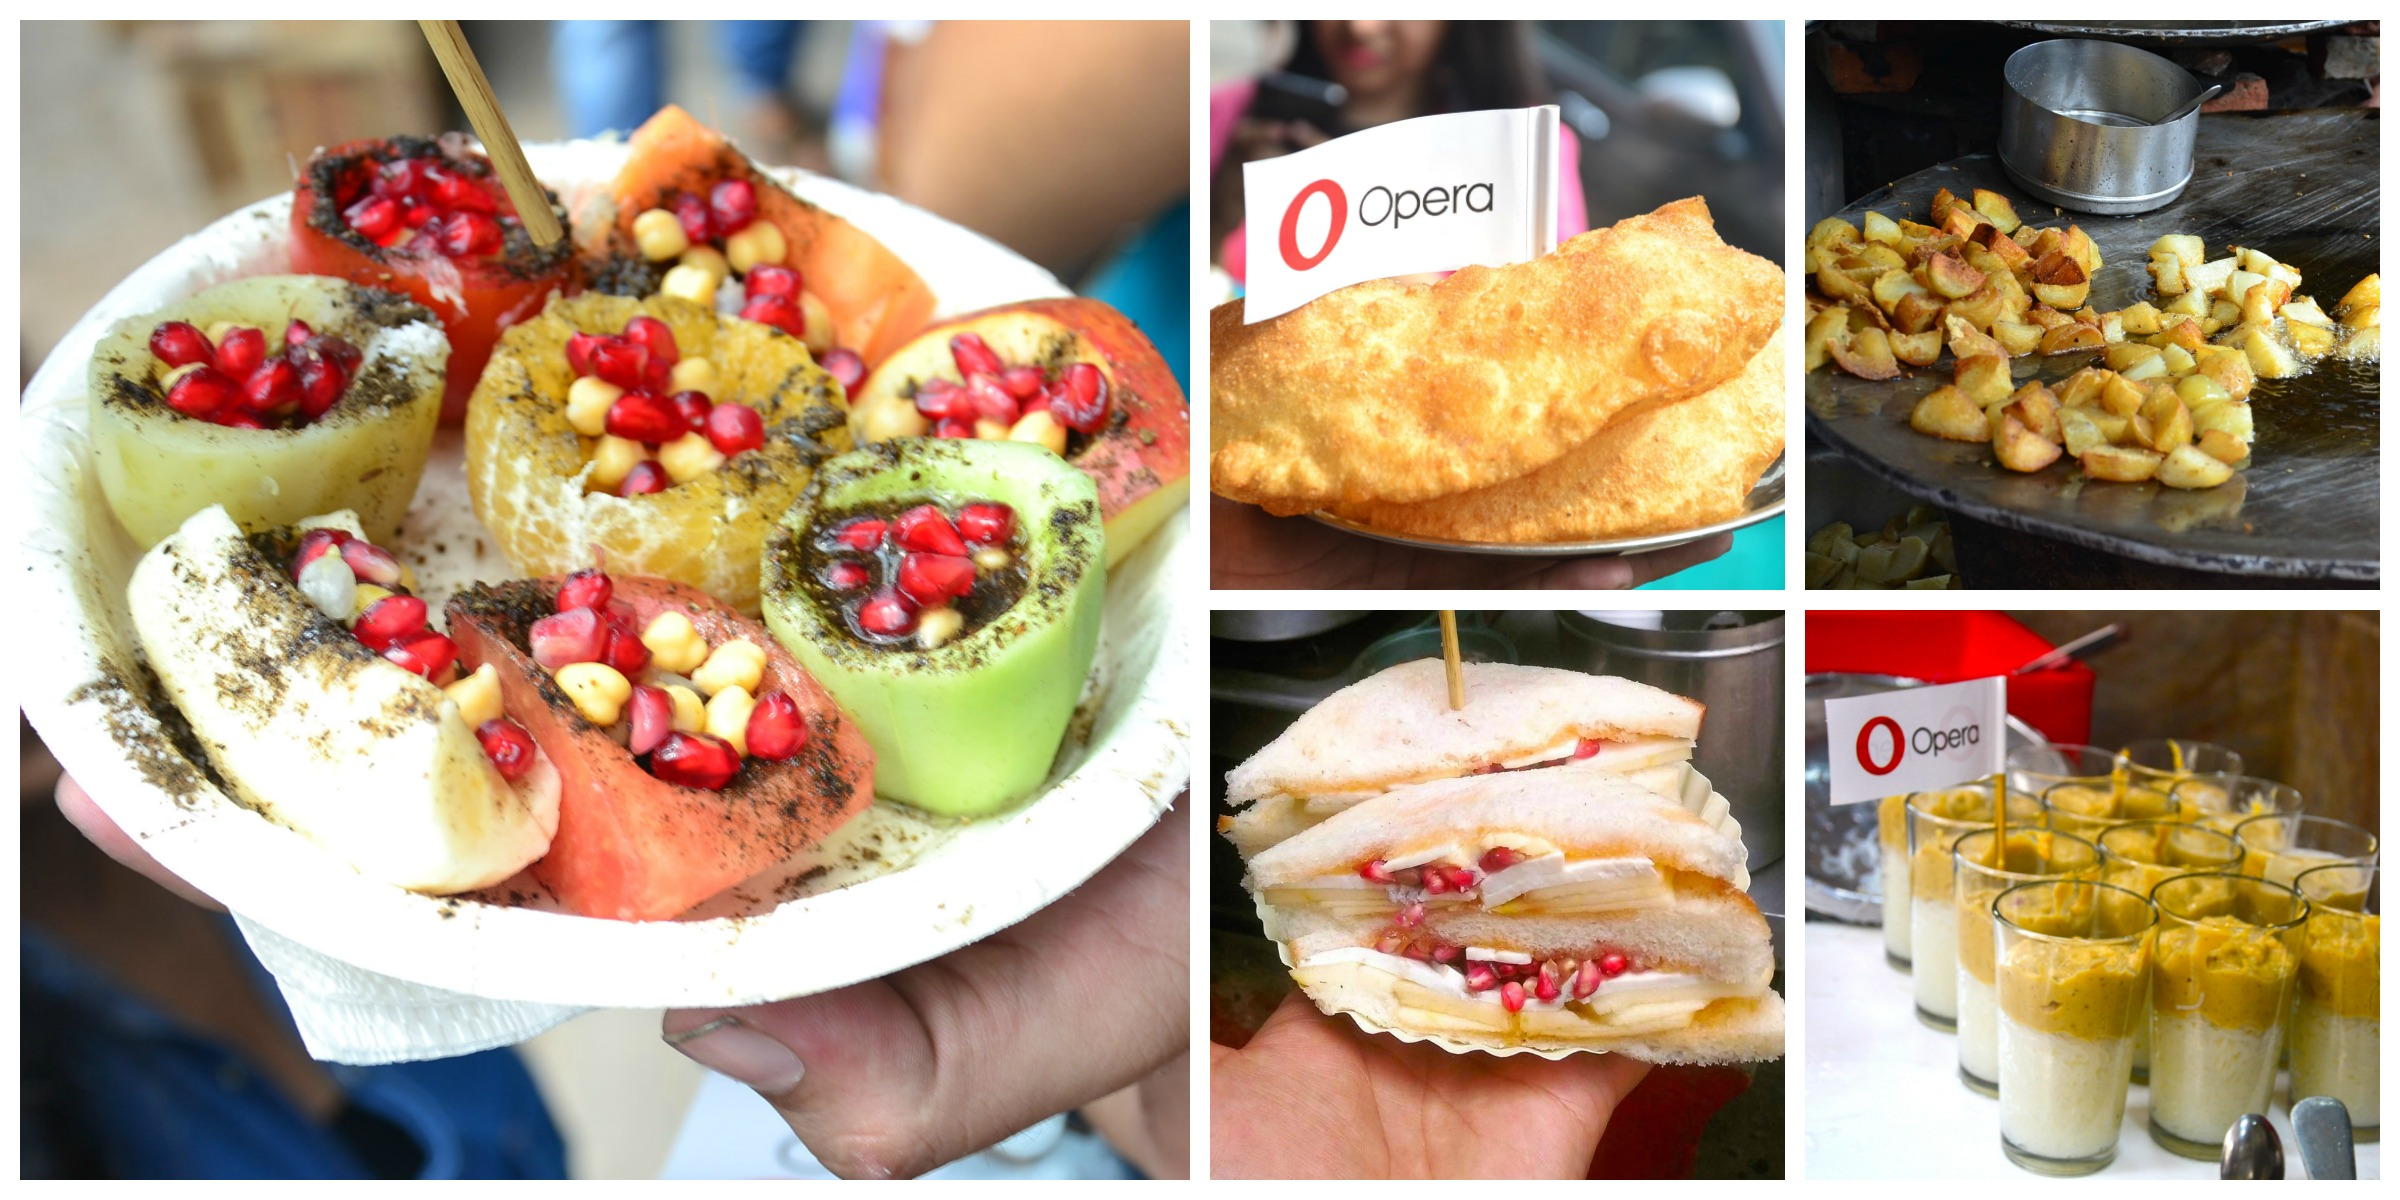 Thumbnail for 'Food bloggers say cheers to Opera Max at #OperaFoodWalk'